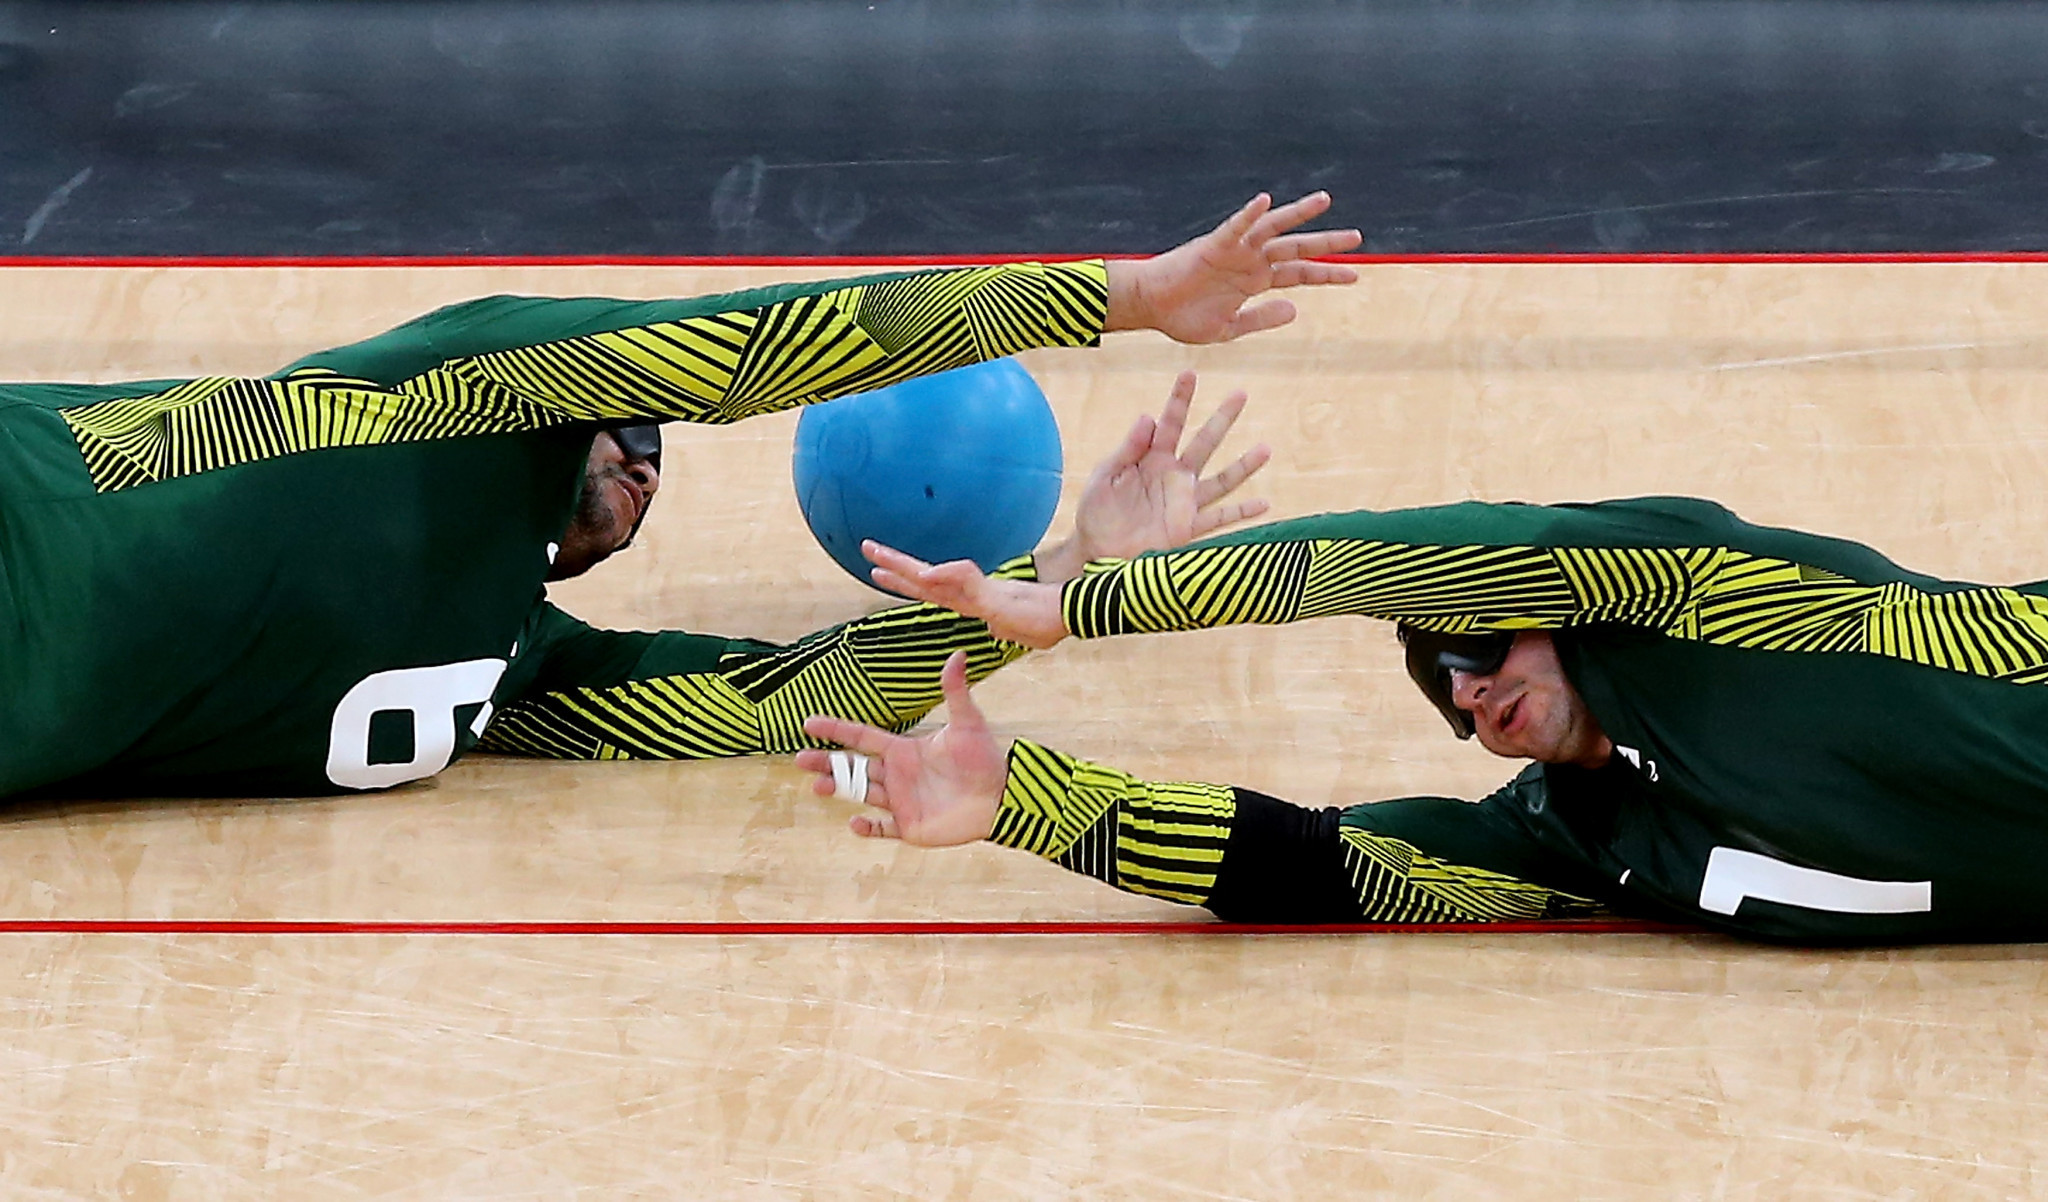 Cape Coast in Ghana to host 2021 African Goalball Championships